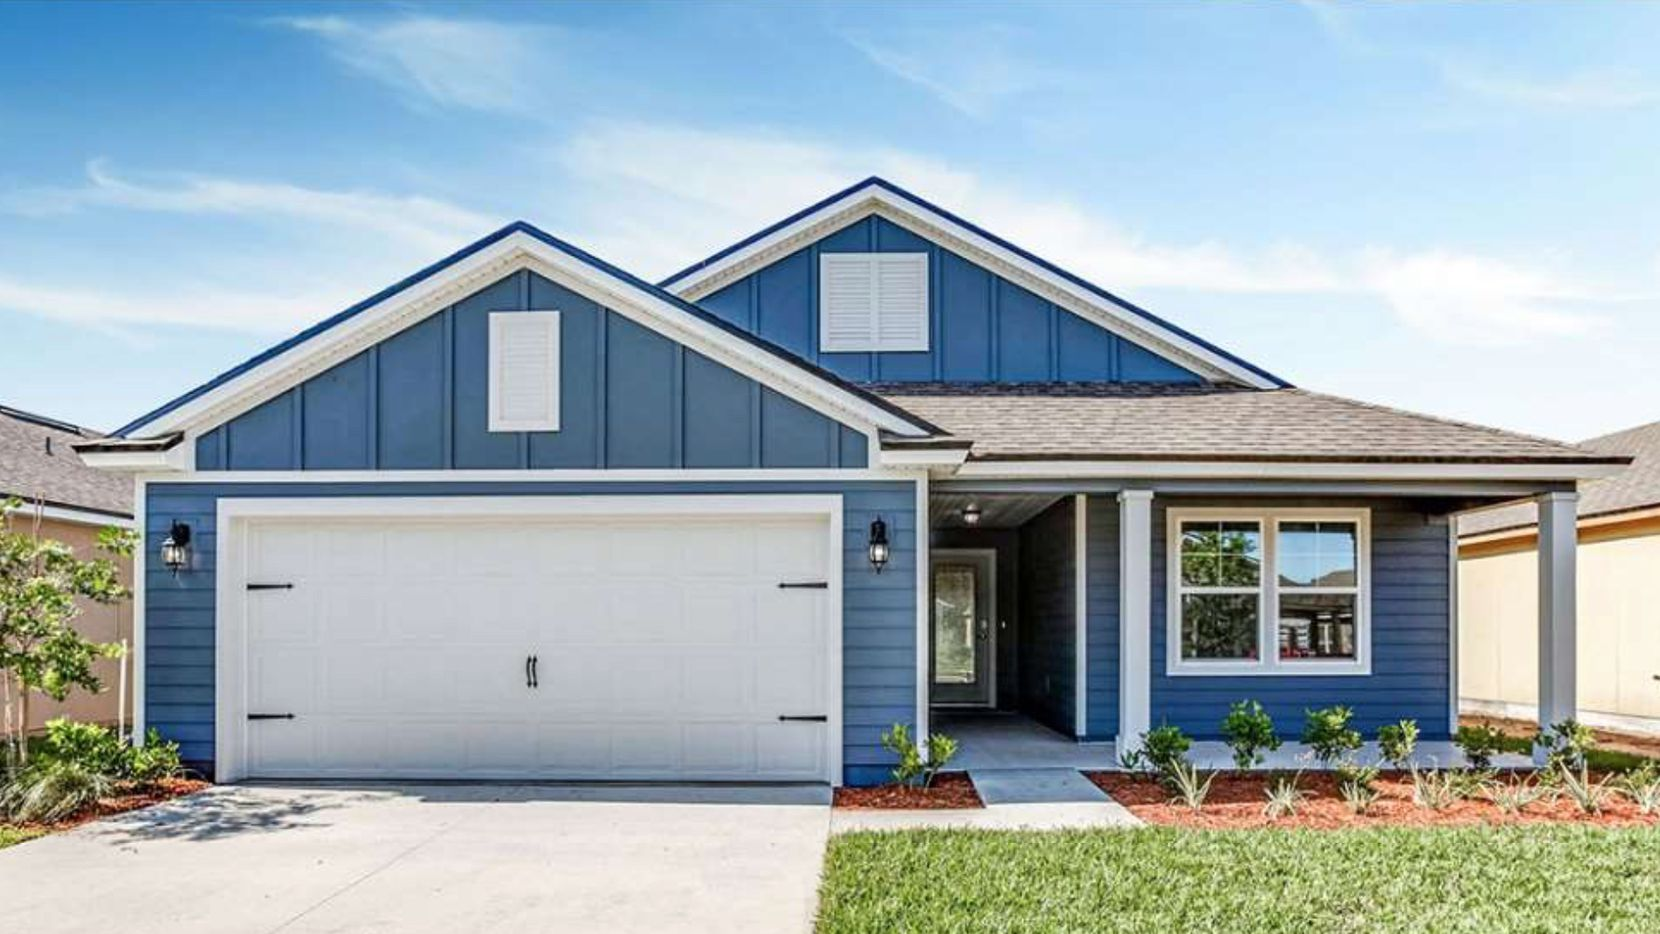 D.R. Horton' new home sales orders were up 38% in the just completed quarter.